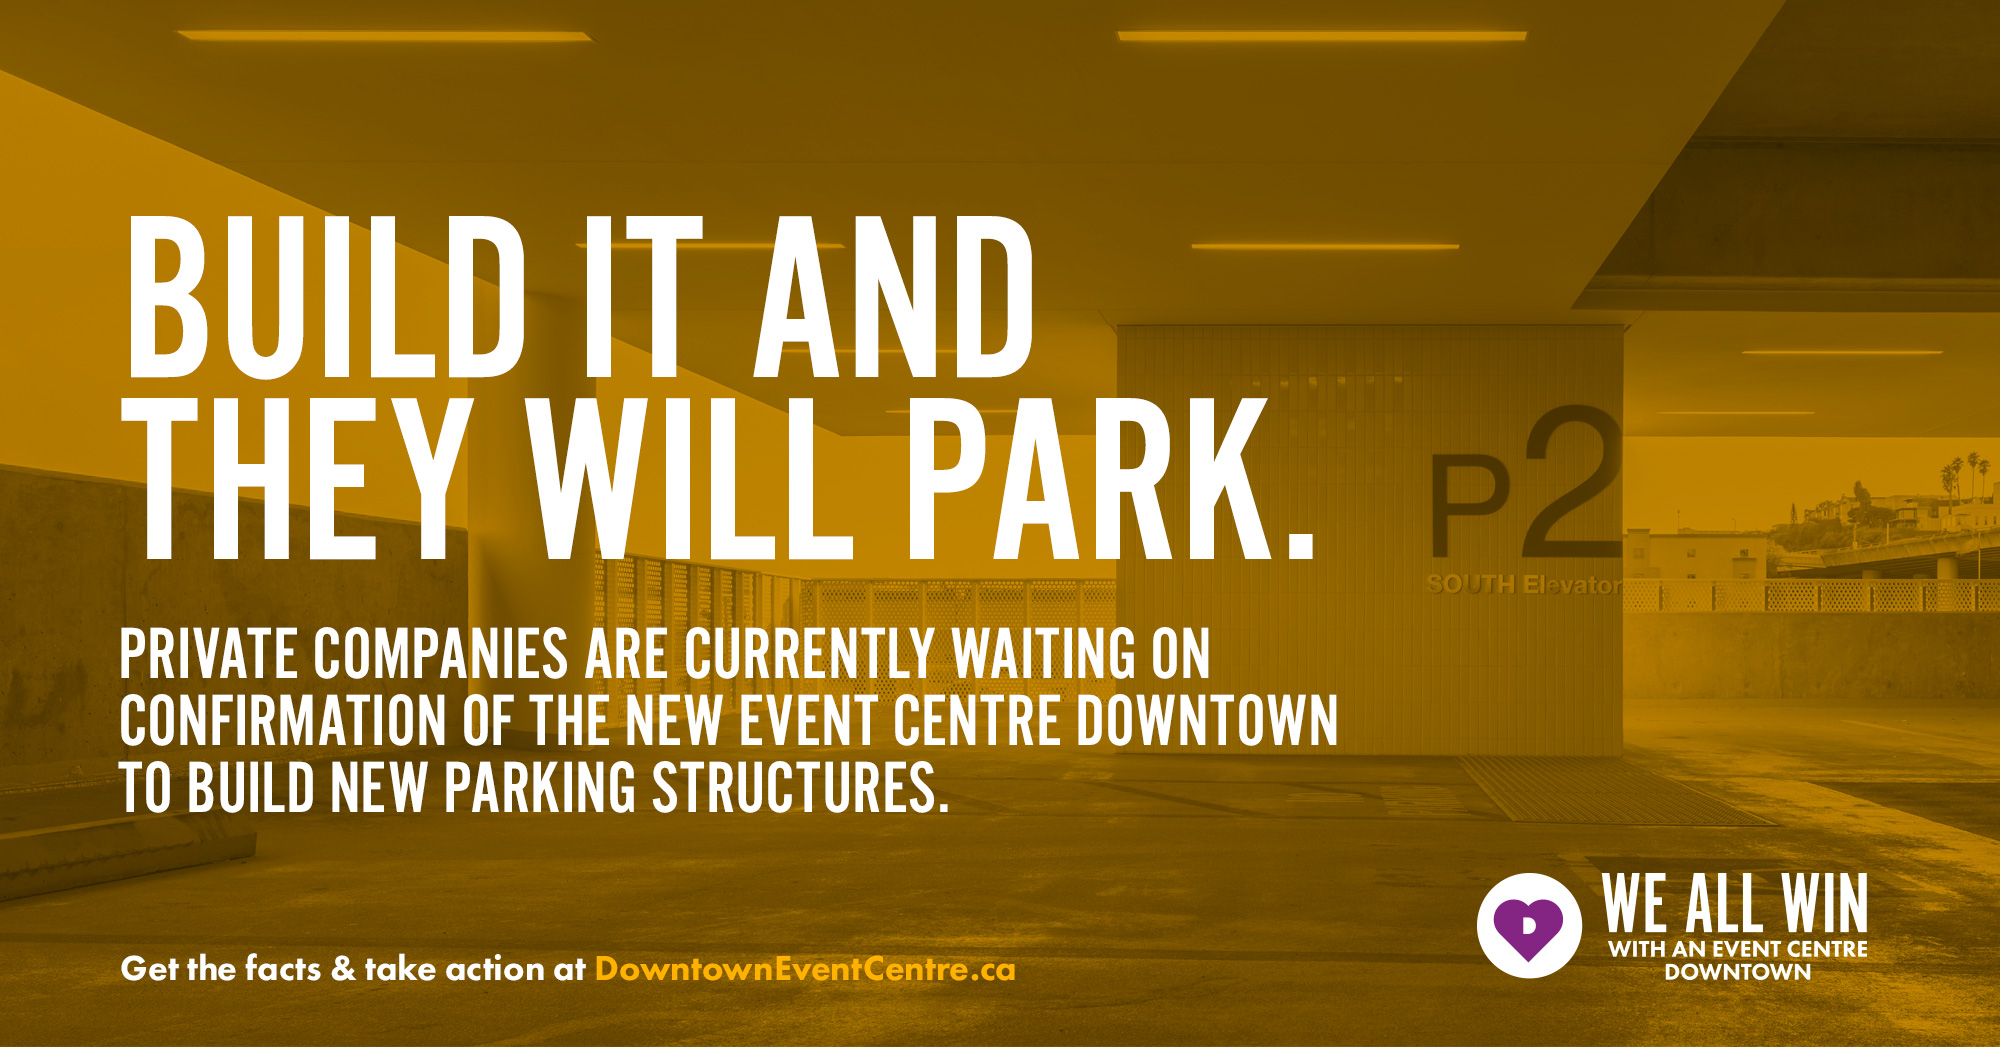 Downtown_Facts_ParkingStructure (Christian Pelletier's conflicted copy 2017-04-30).jpg